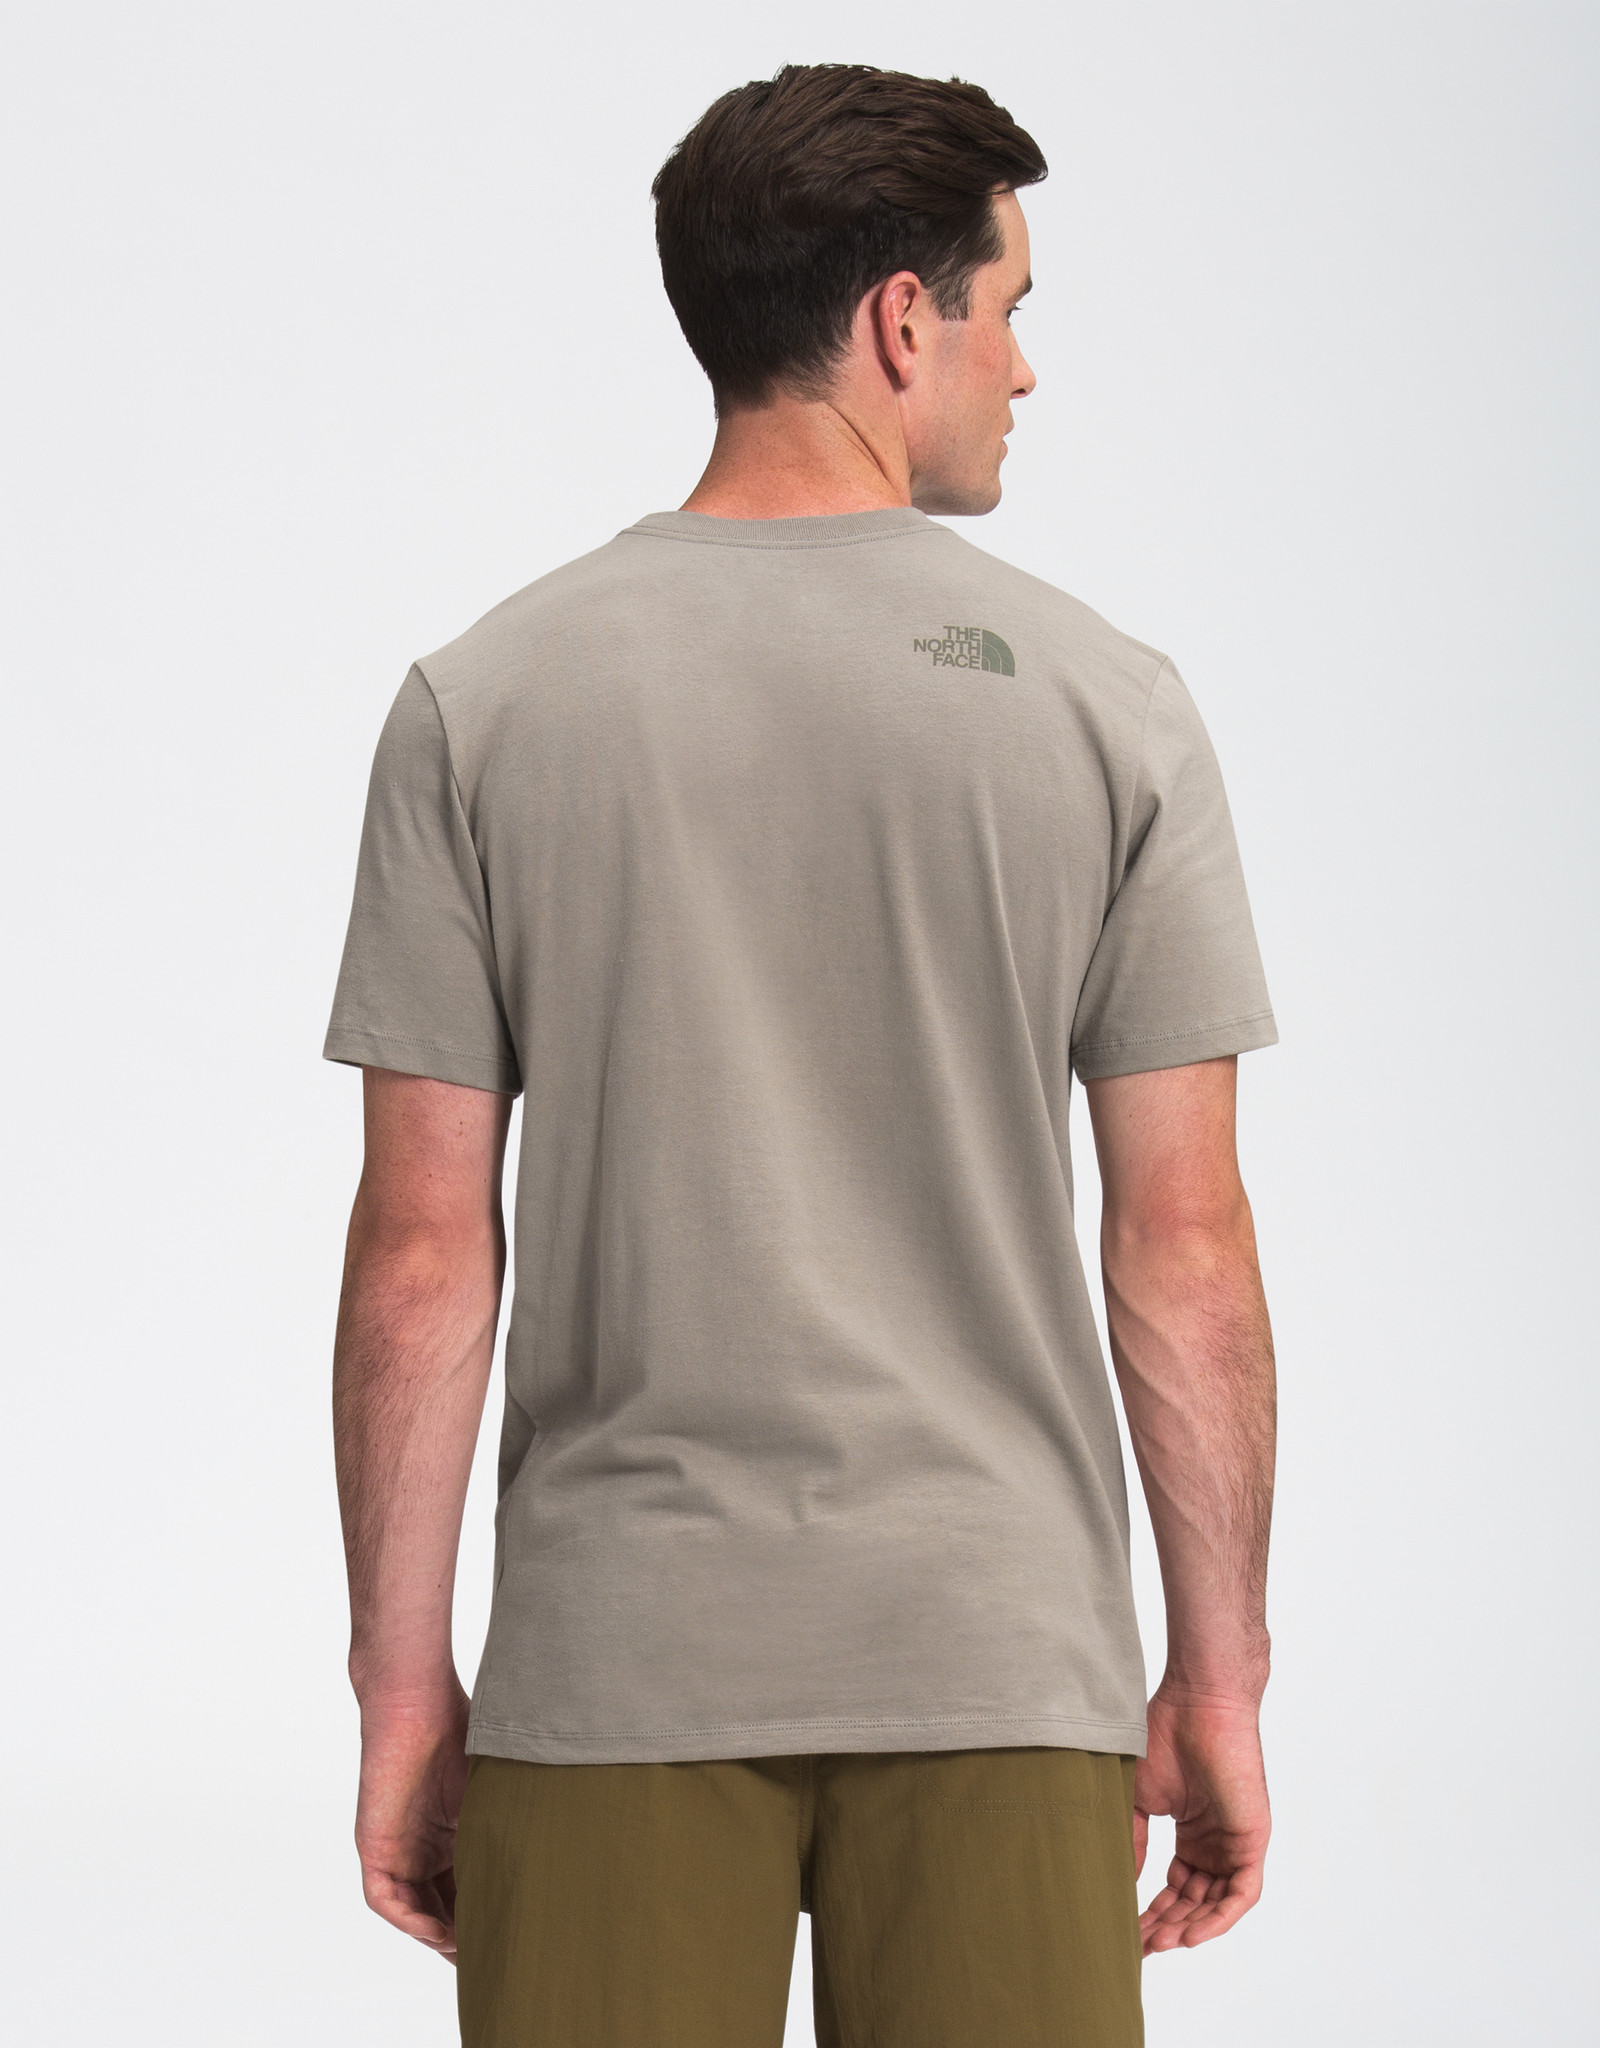 The North Face The North Face Men's S/S Choose Your Path Tee -S2021